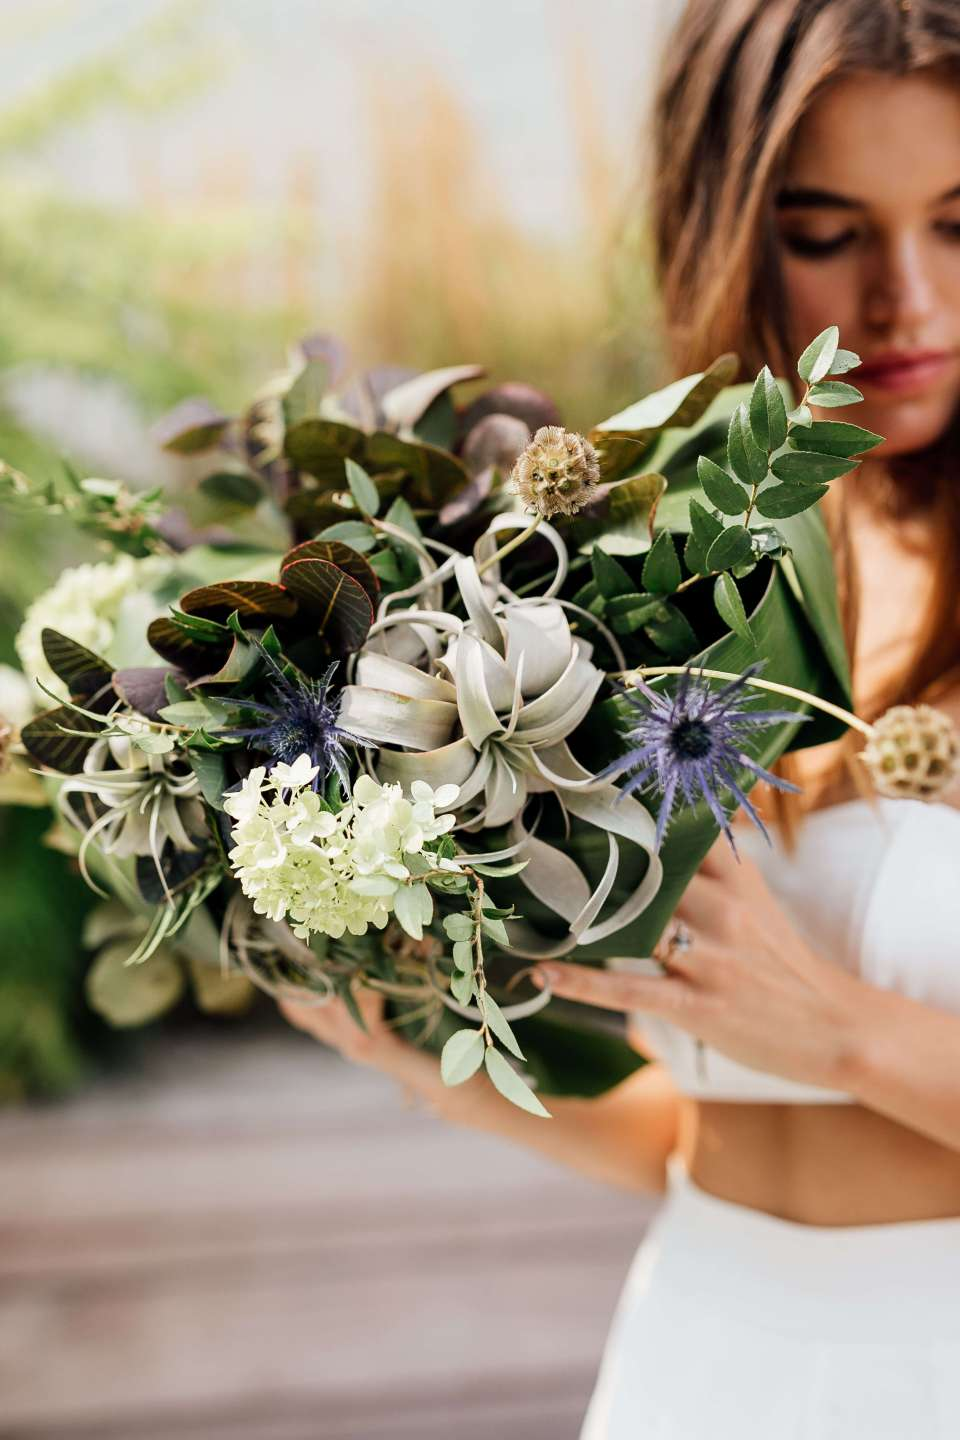 A sustainable wedding bouquet made from repurposed florals and wildflowers.